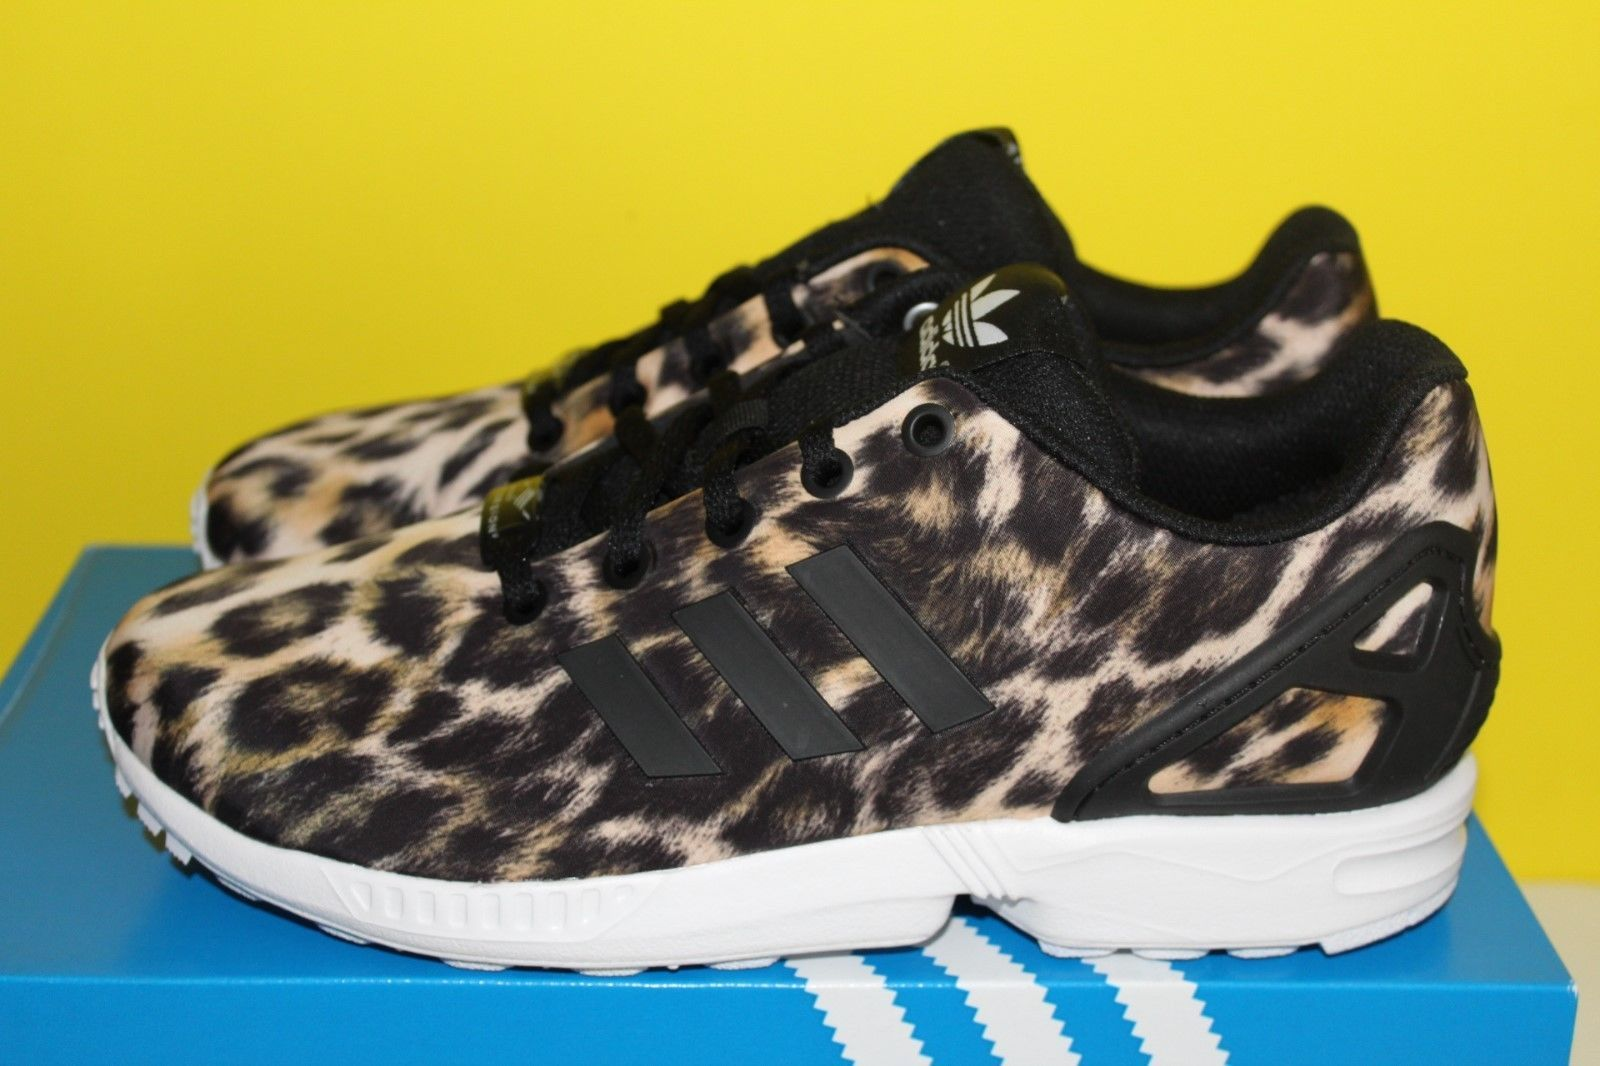 445b18878 Adidas ZX Flux Leopard Animal Print Torsion Juniors Girls 5 - 7 Trainers  B25642